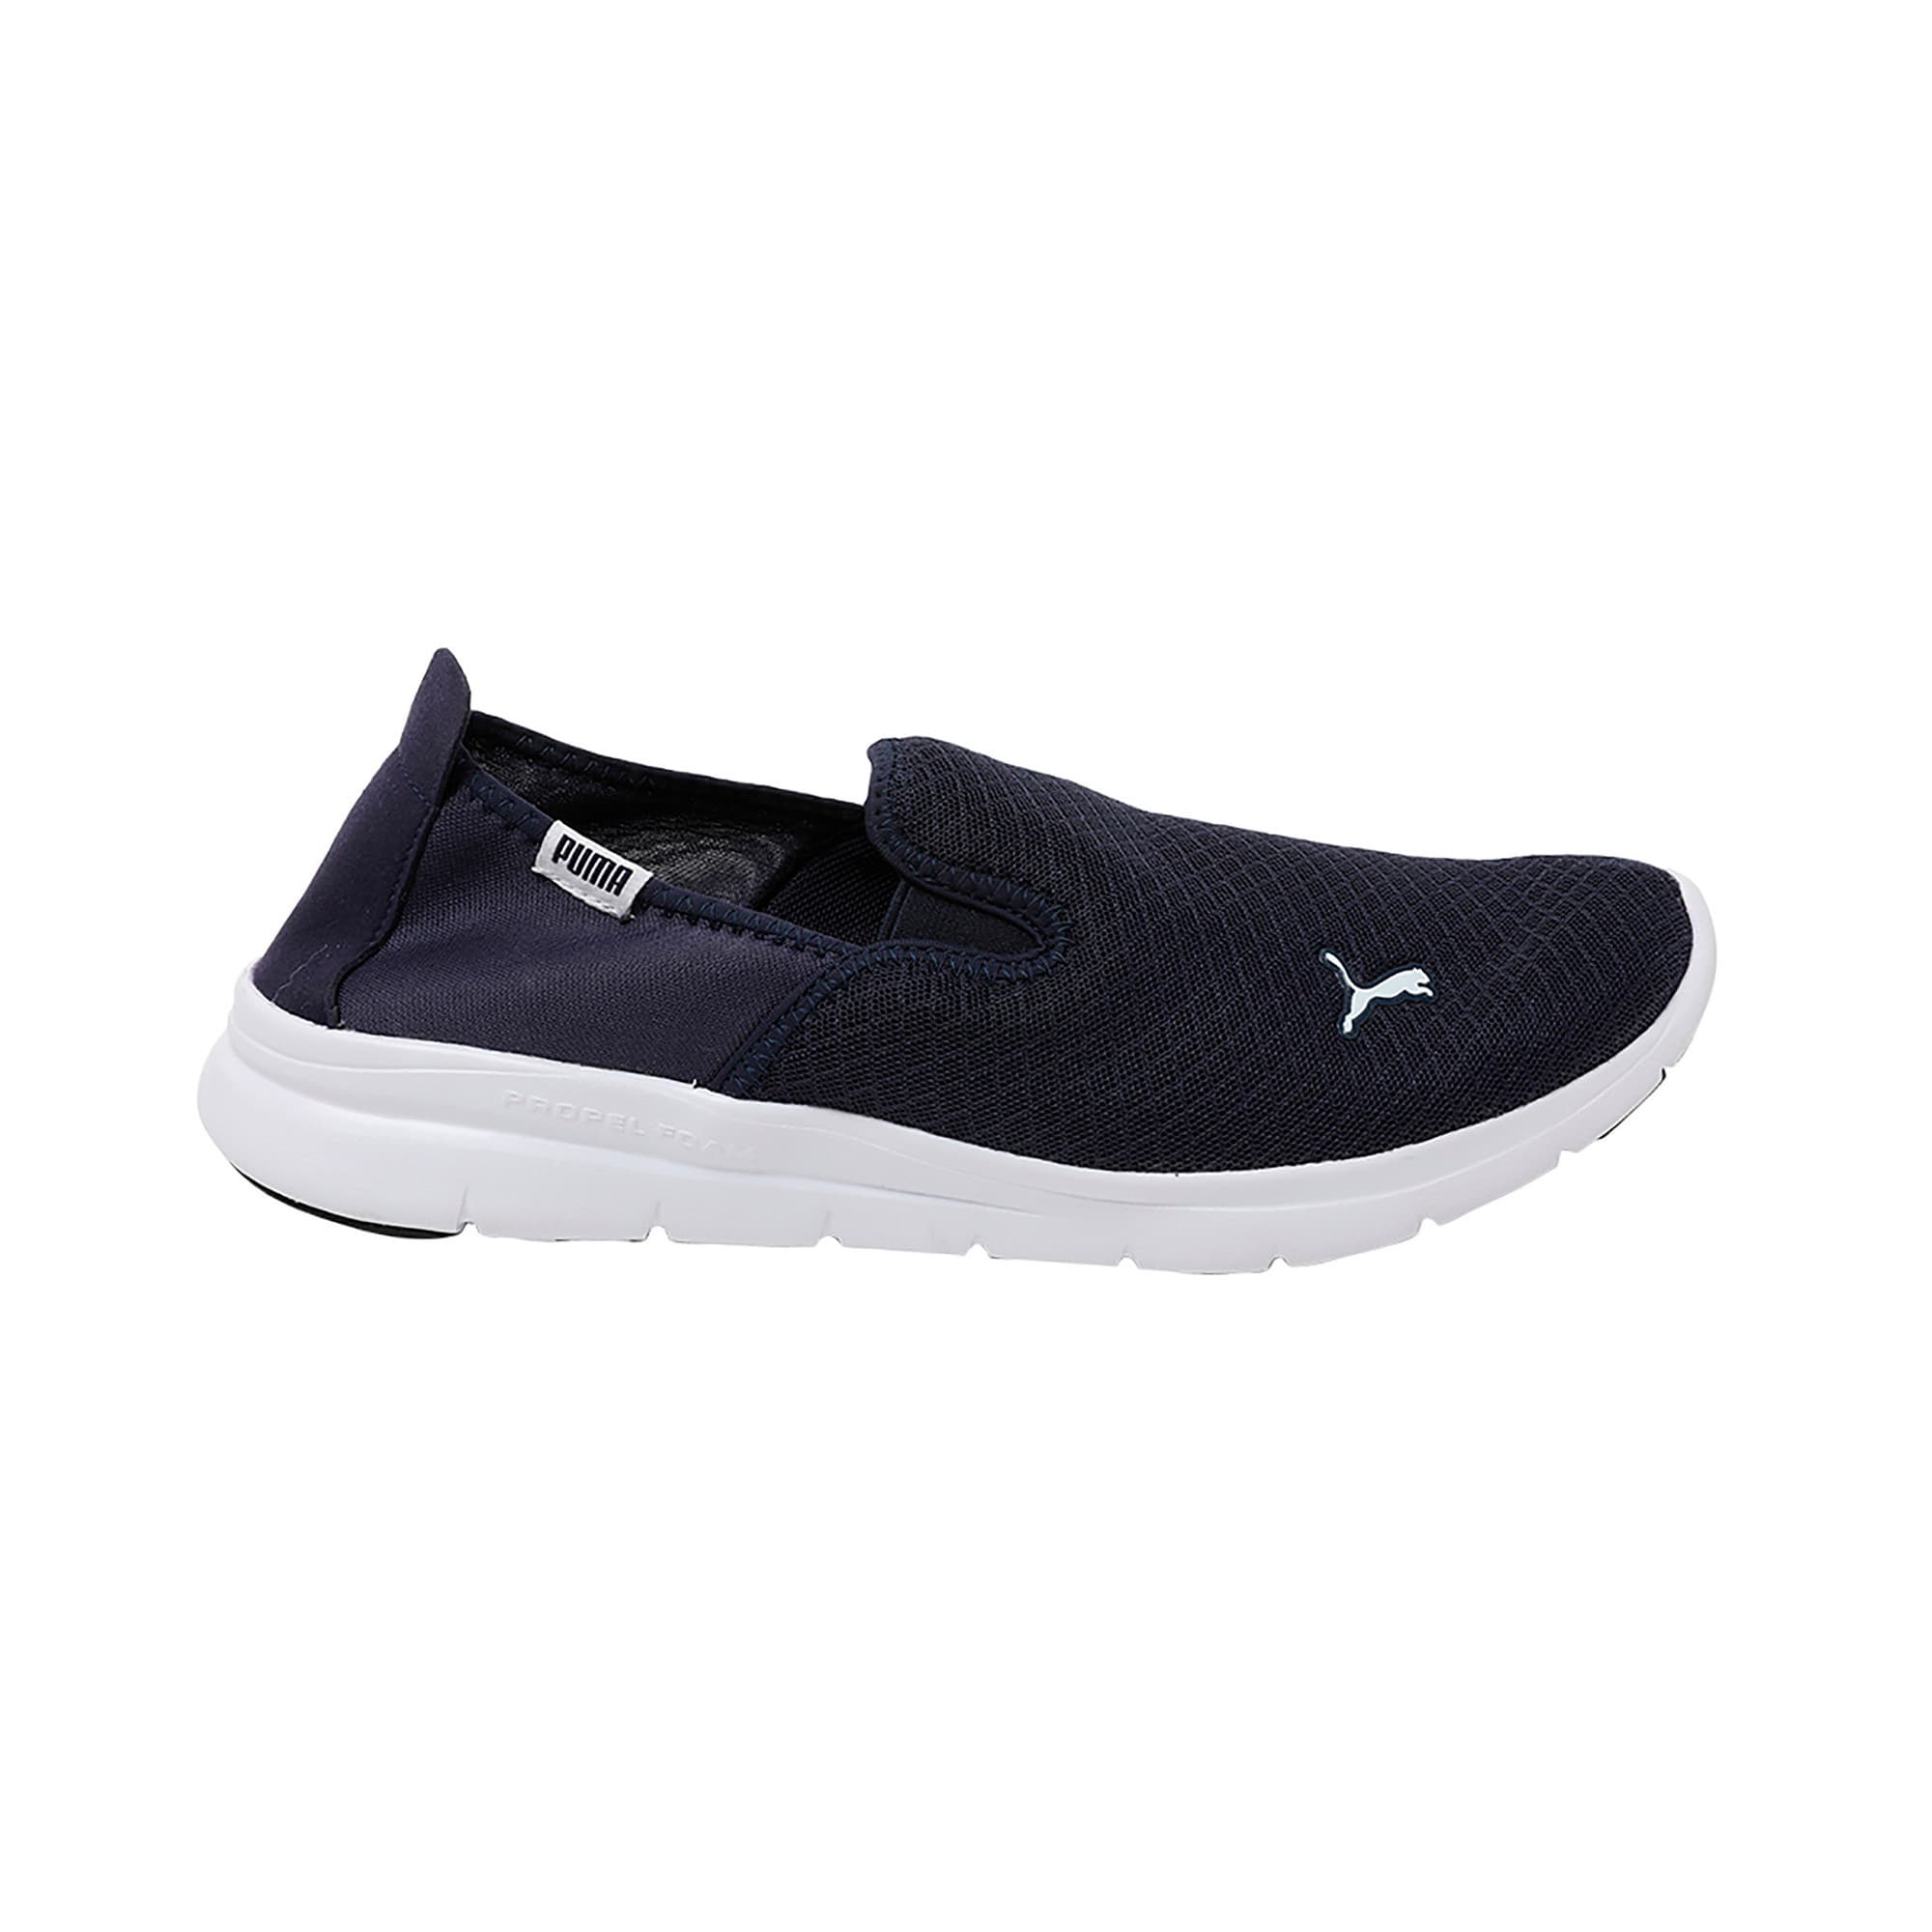 Thumbnail 5 of PUMA Flex Essential Slip On IDP Peacoat-, Peacoat-Peacoat, medium-IND